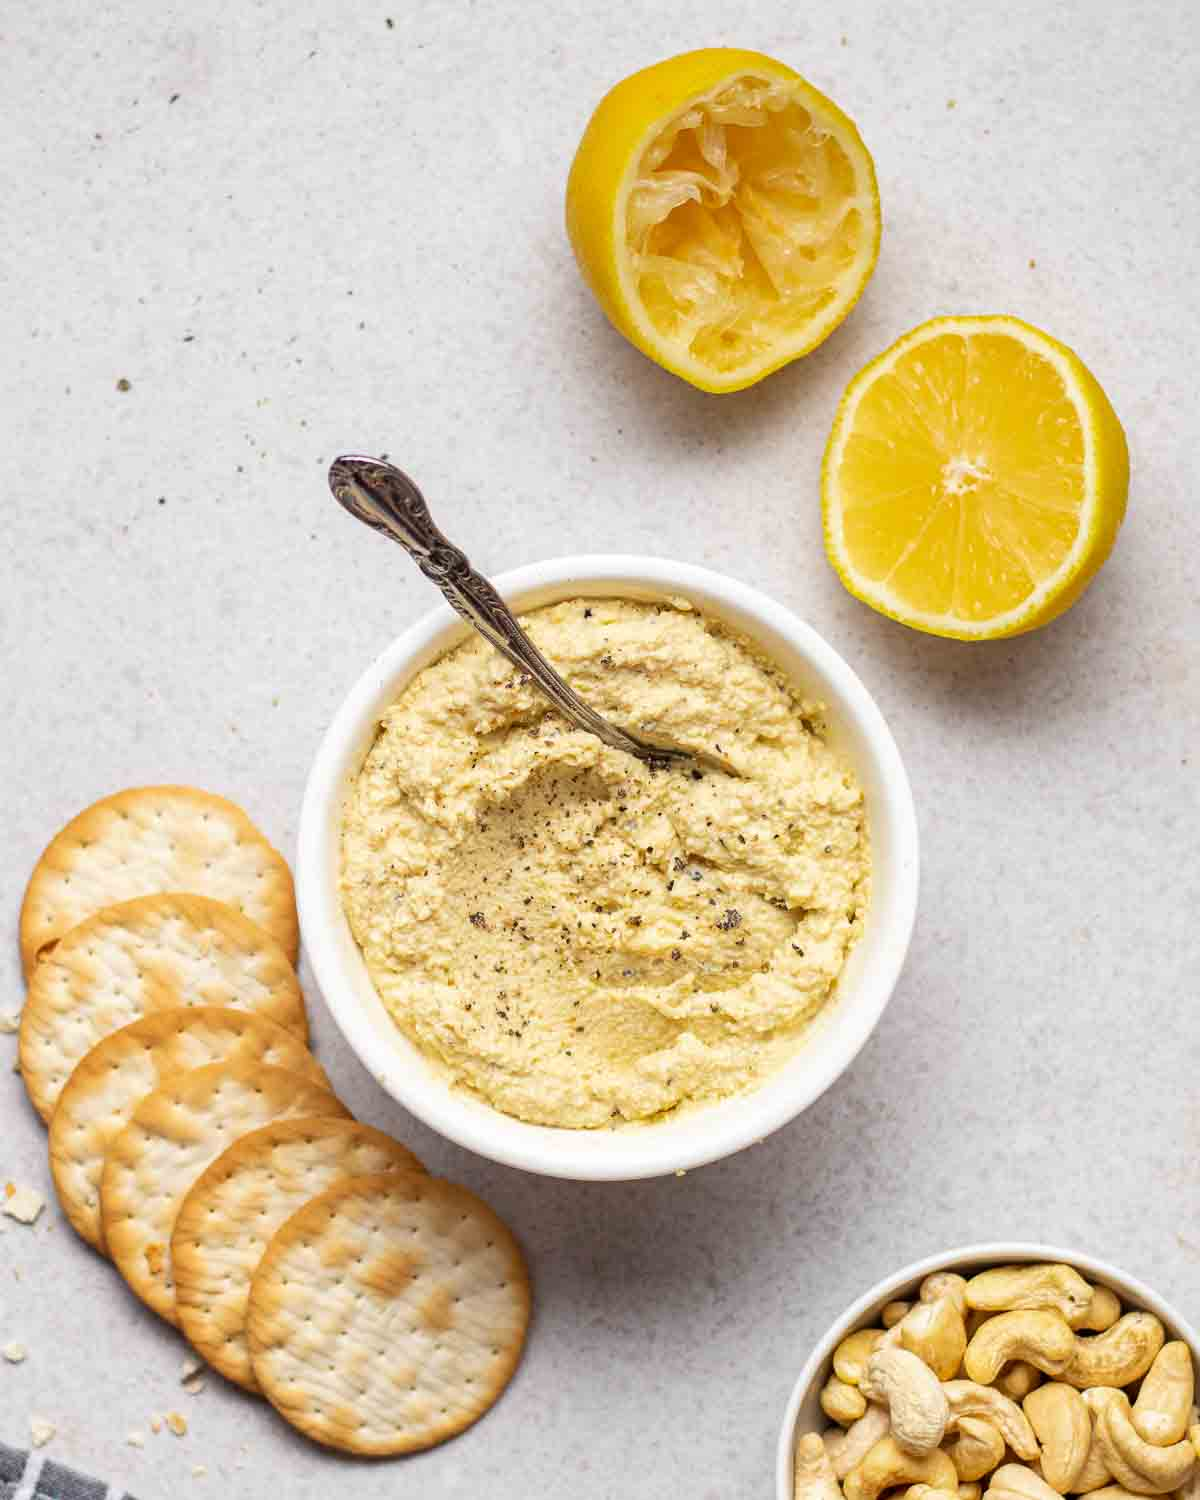 A bowl of dairy-free ricotta with a spoon. There lemon halves, crackers and bowl filled with cashews beside.